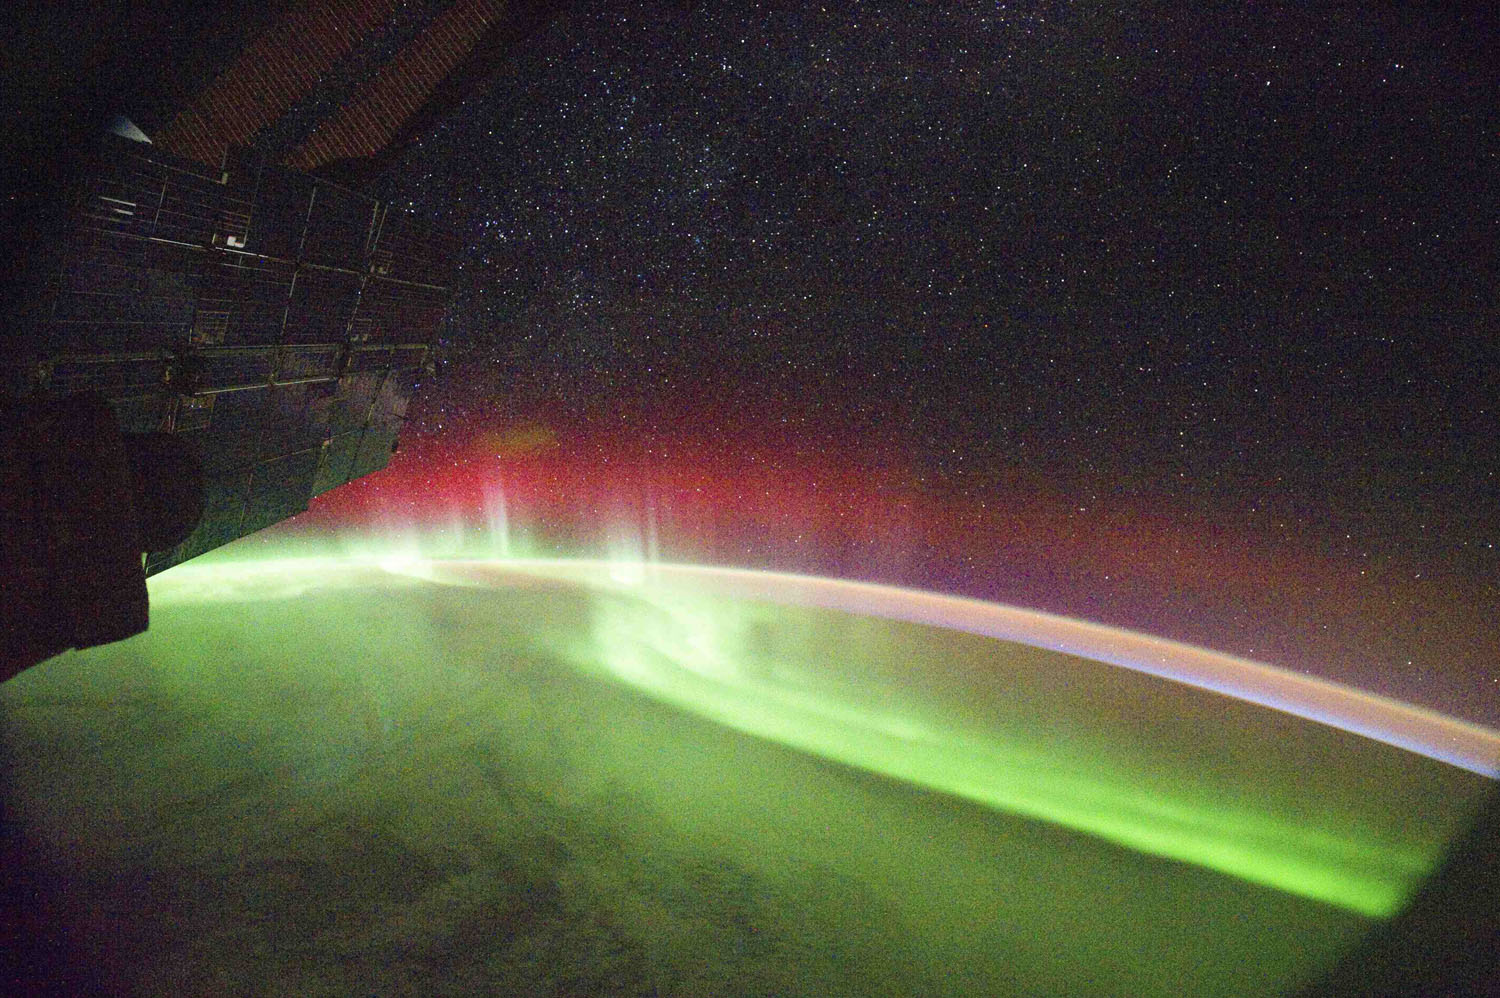 September 26, 2011. A NASA image captured from the International Space Station shows rare aurora appearing in red. The colours depend on which atoms are causing the splash of light seen in the aurora. In most cases, the light comes when a charged particle sweeps in from the solar wind and collides with an oxygen atom in Earth's atmosphere. This produces a green photon, so most auroras appear green. However, lower-energy oxygen collisions as well as collisions with nitrogen atoms can produce red photons—so sometimes aurora also show a red band as seen here.